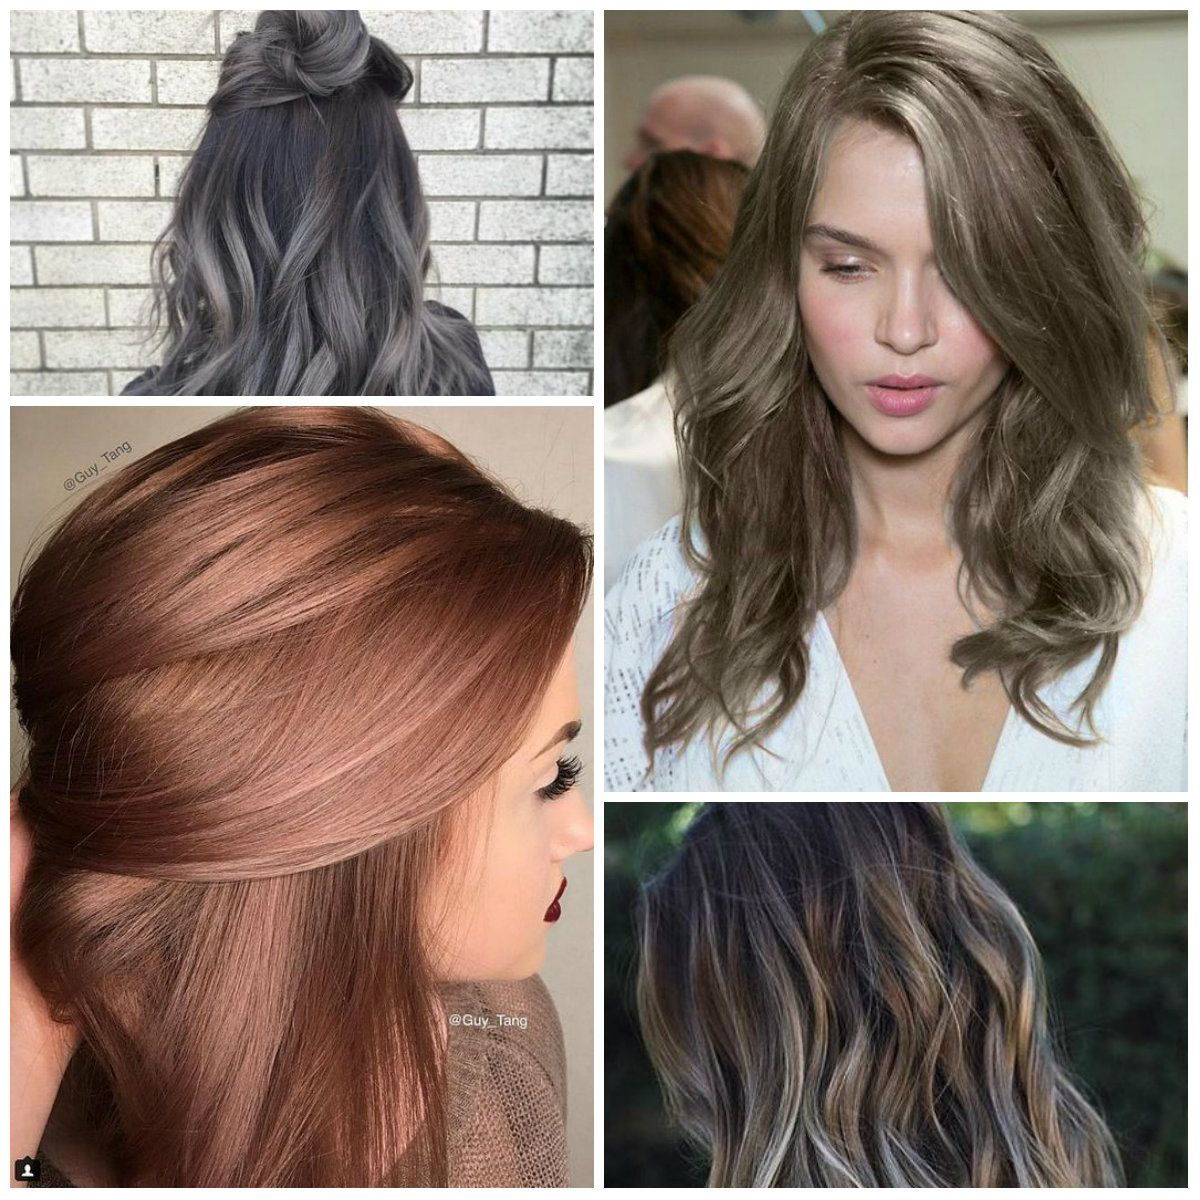 New Hair Color Ideas & Trends for 2017 | Beauty tips ...